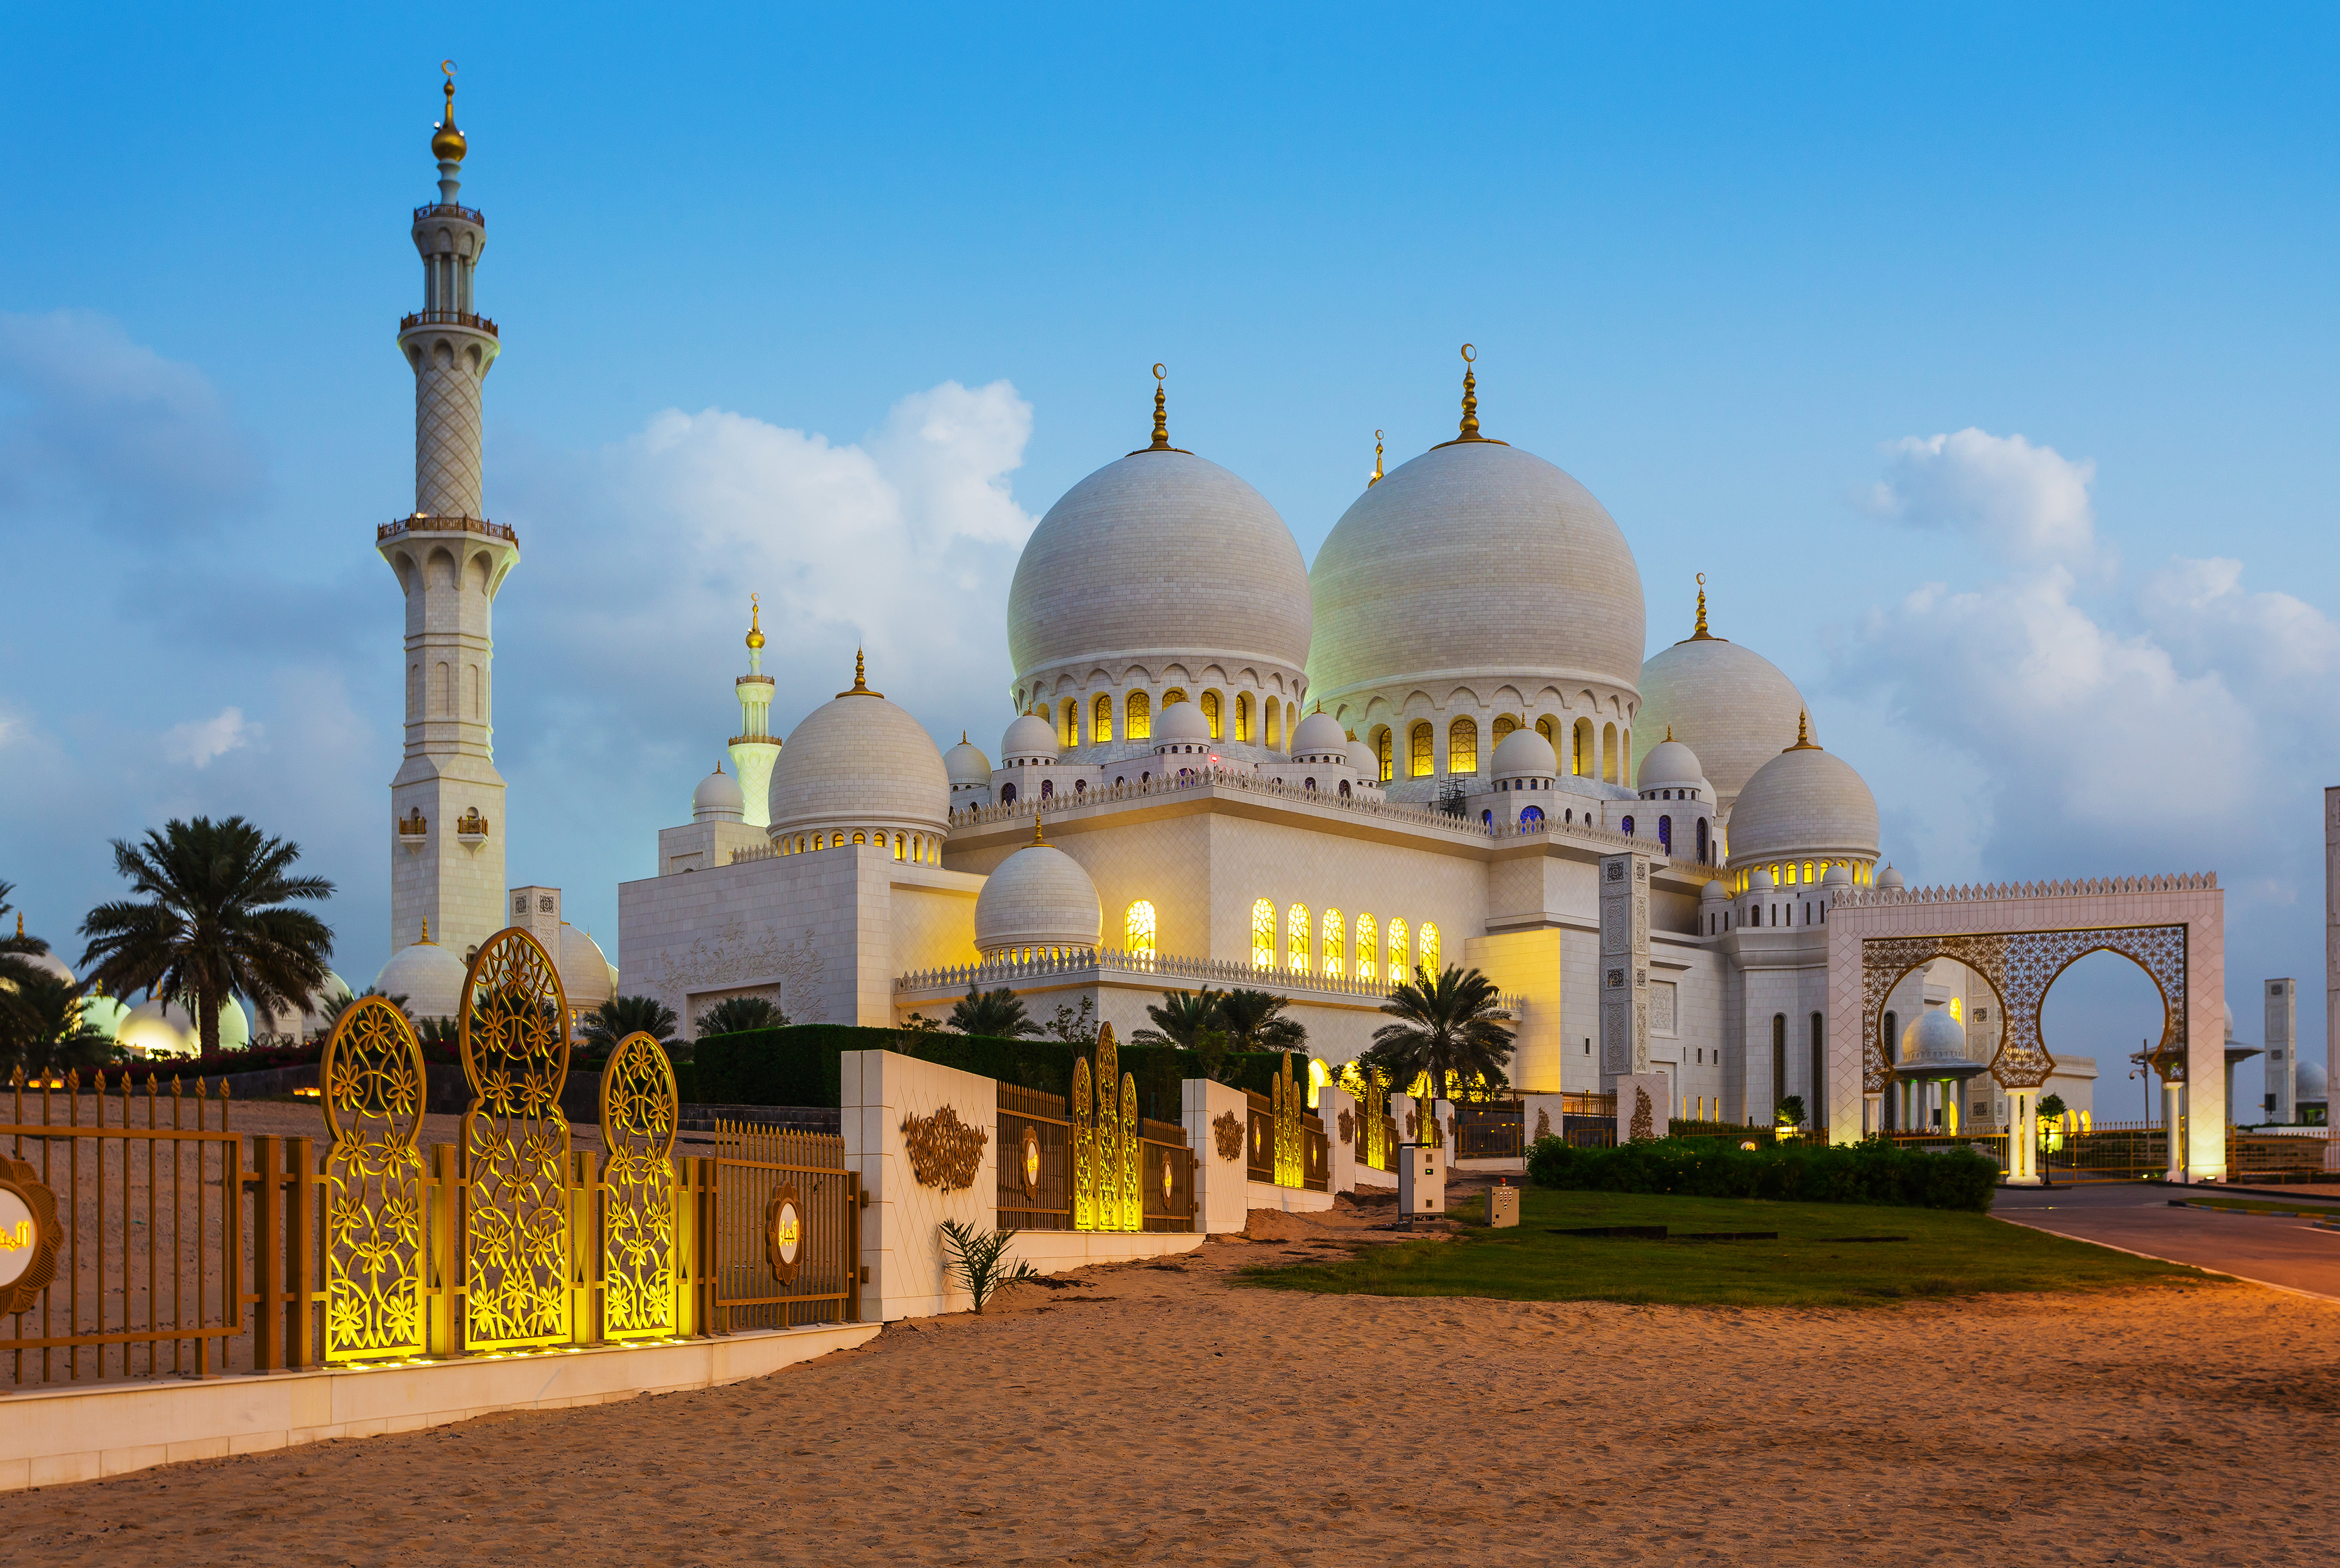 44 Mosque Hd Wallpapers Background Images Wallpaper Abyss